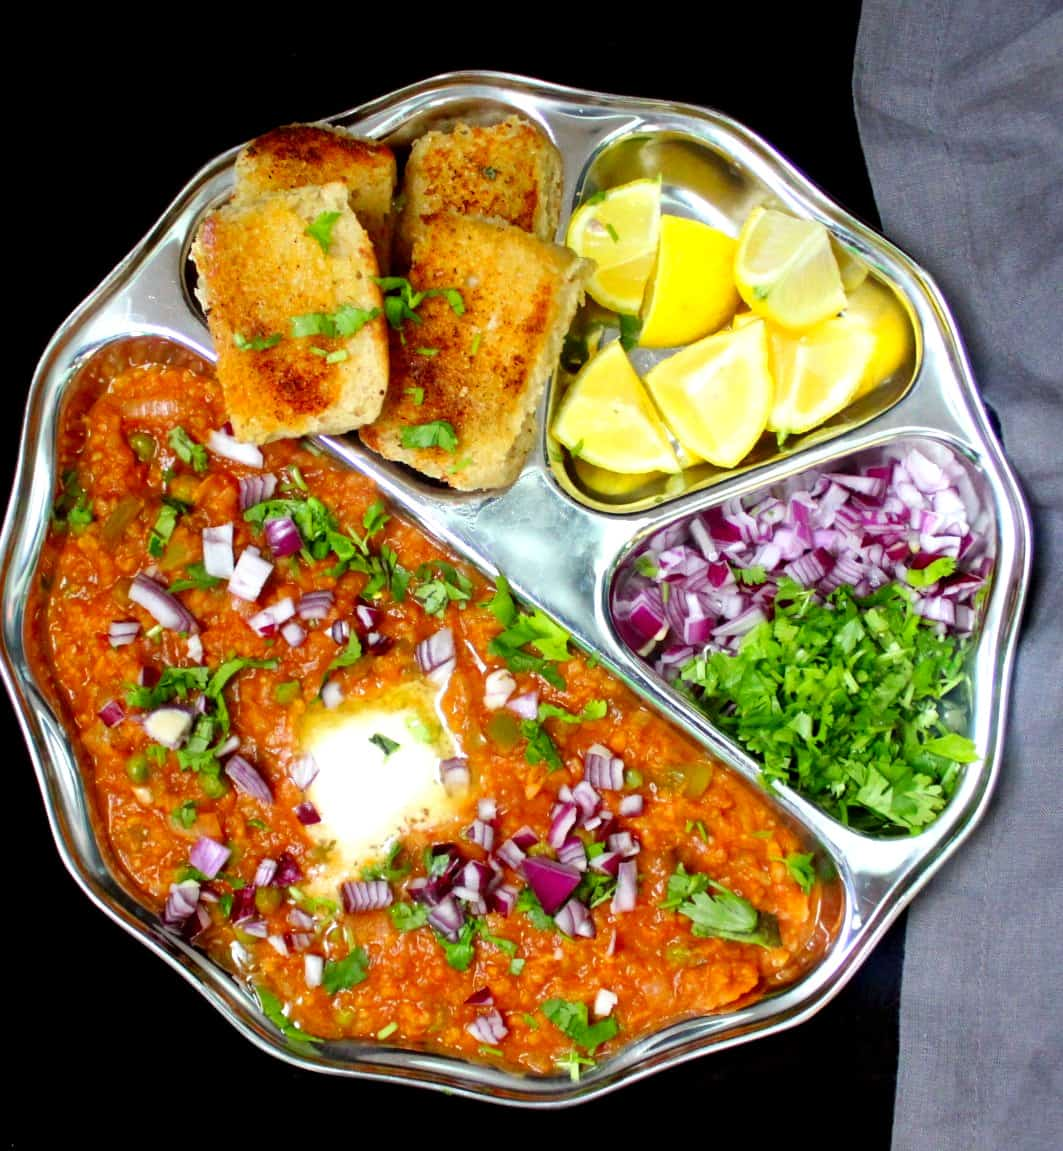 An overhead shot of a plate of pav bhaji with the mashed veggies, pav, lemons onions and cilantro